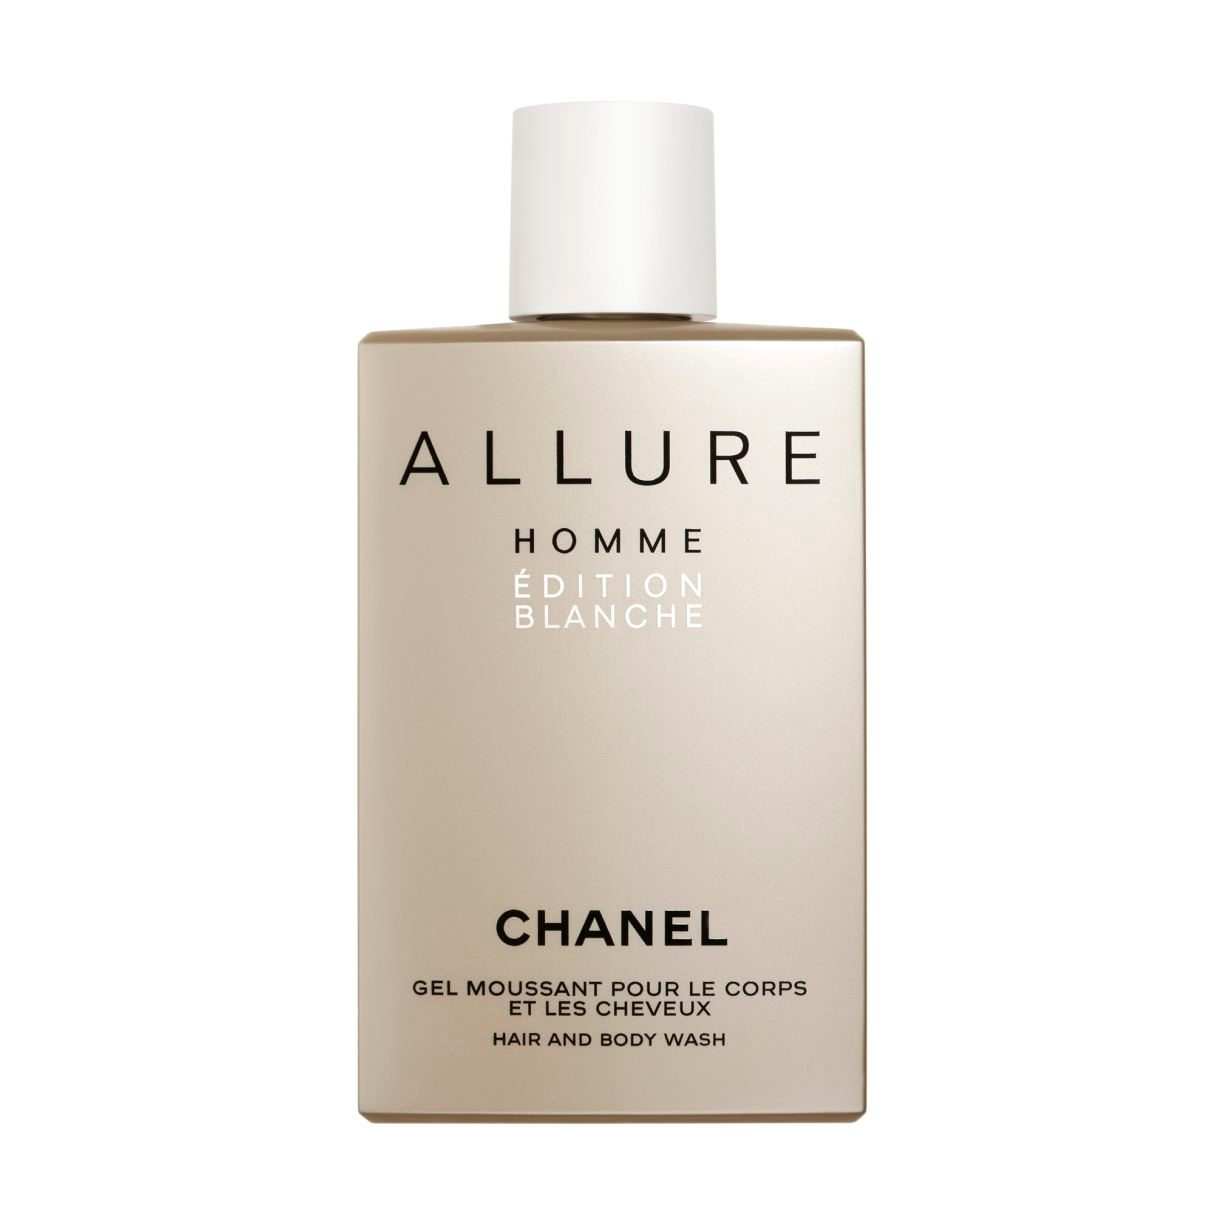 ALLURE HOMME ÉDITION BLANCHE SHOWER GEL - เจลอาบน้ำ